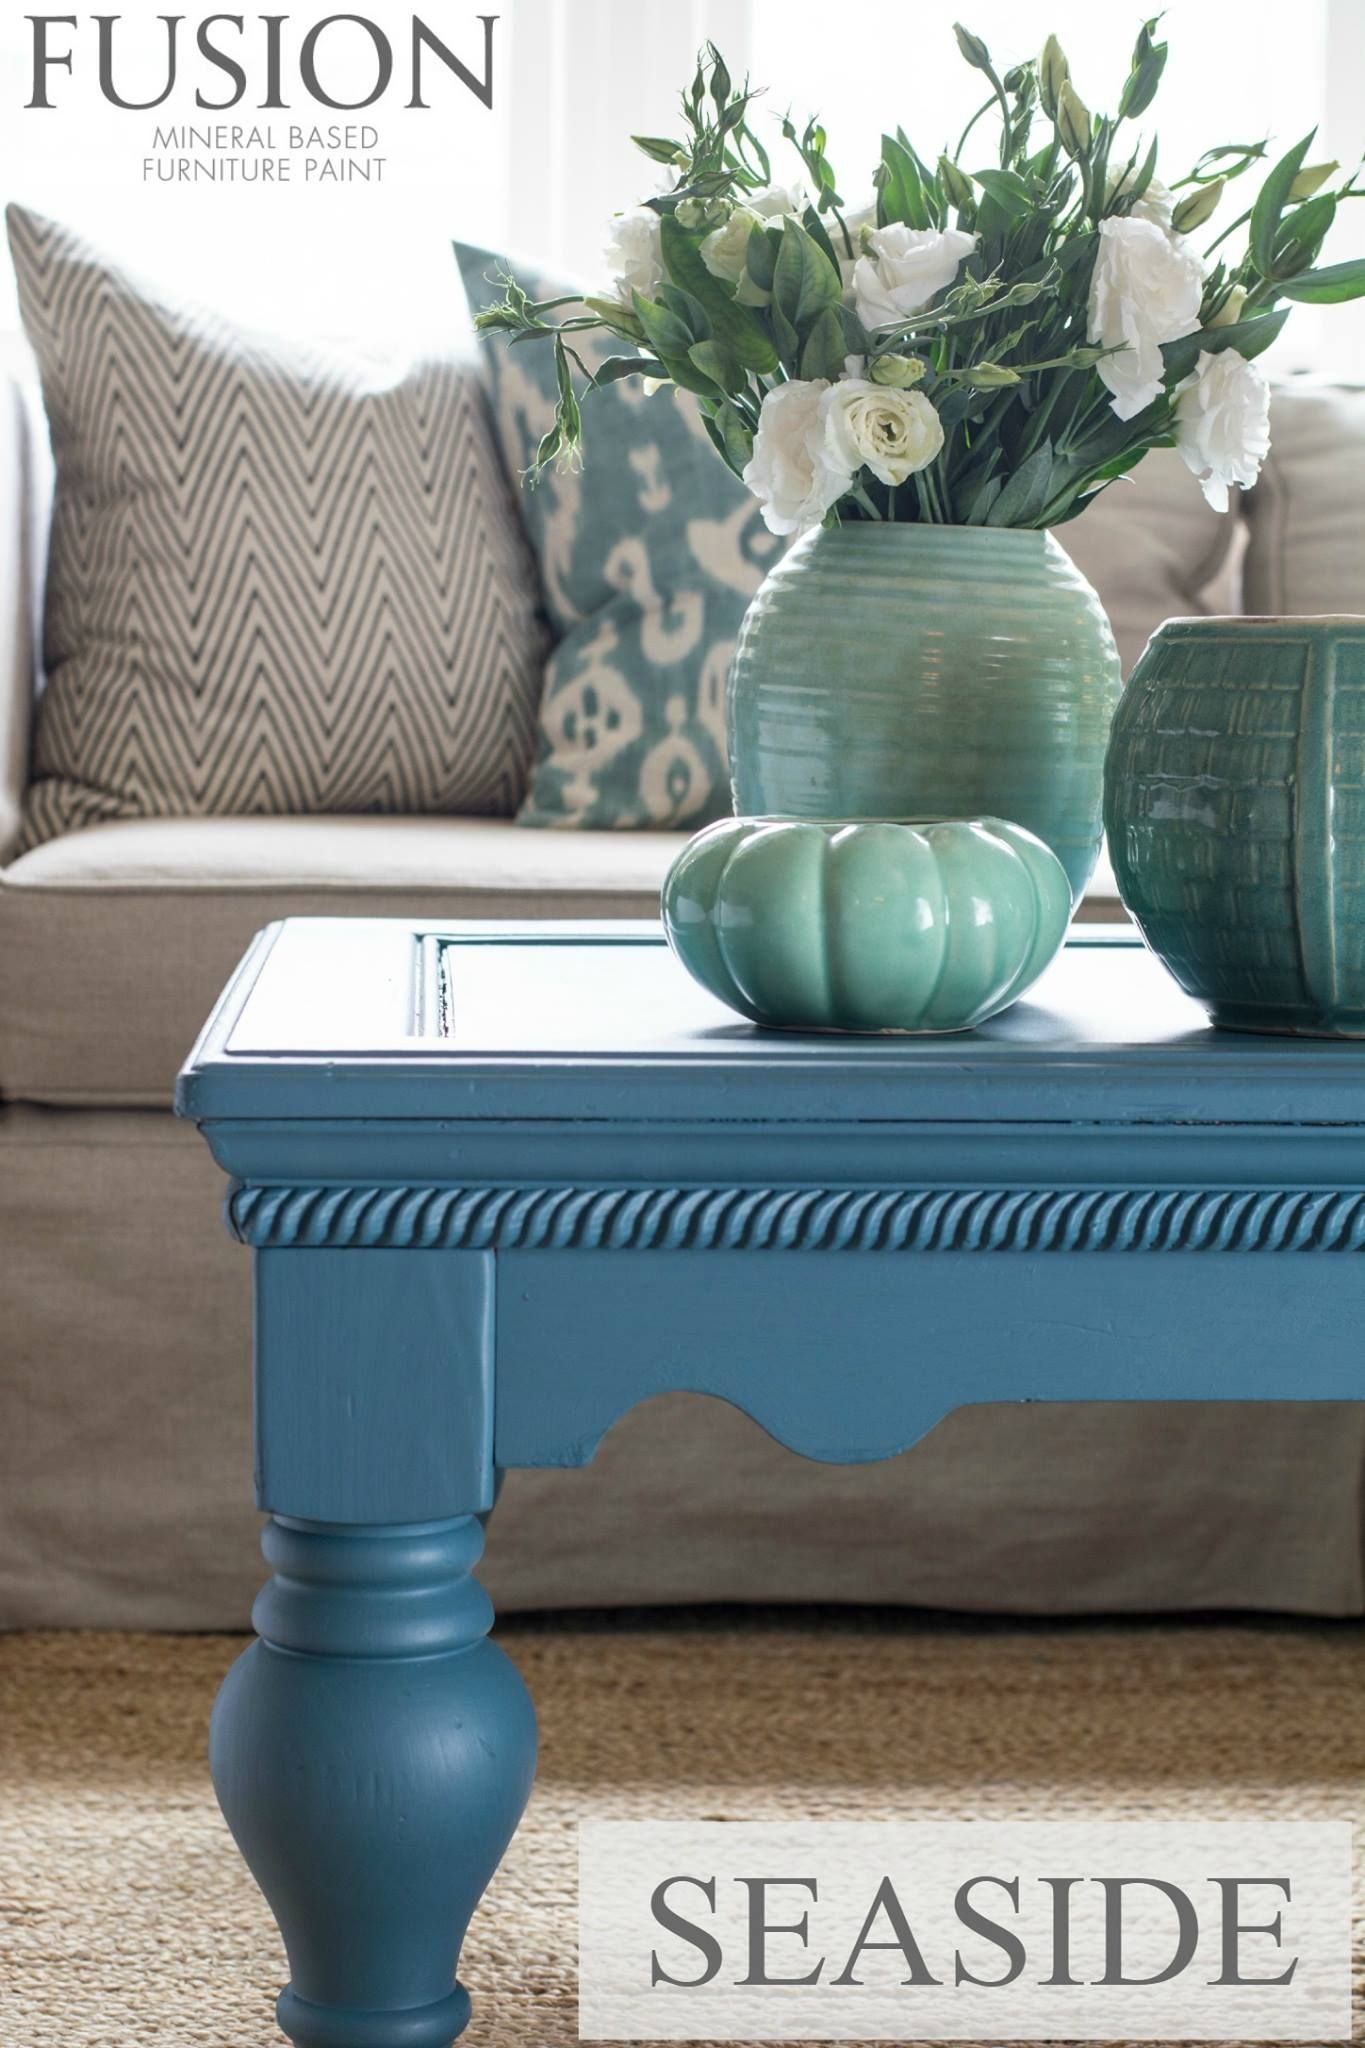 painting furniture ideas color. Furniture Ideas · Seaside Fusion Mineral Paint...gorgeous Color! Painting Color